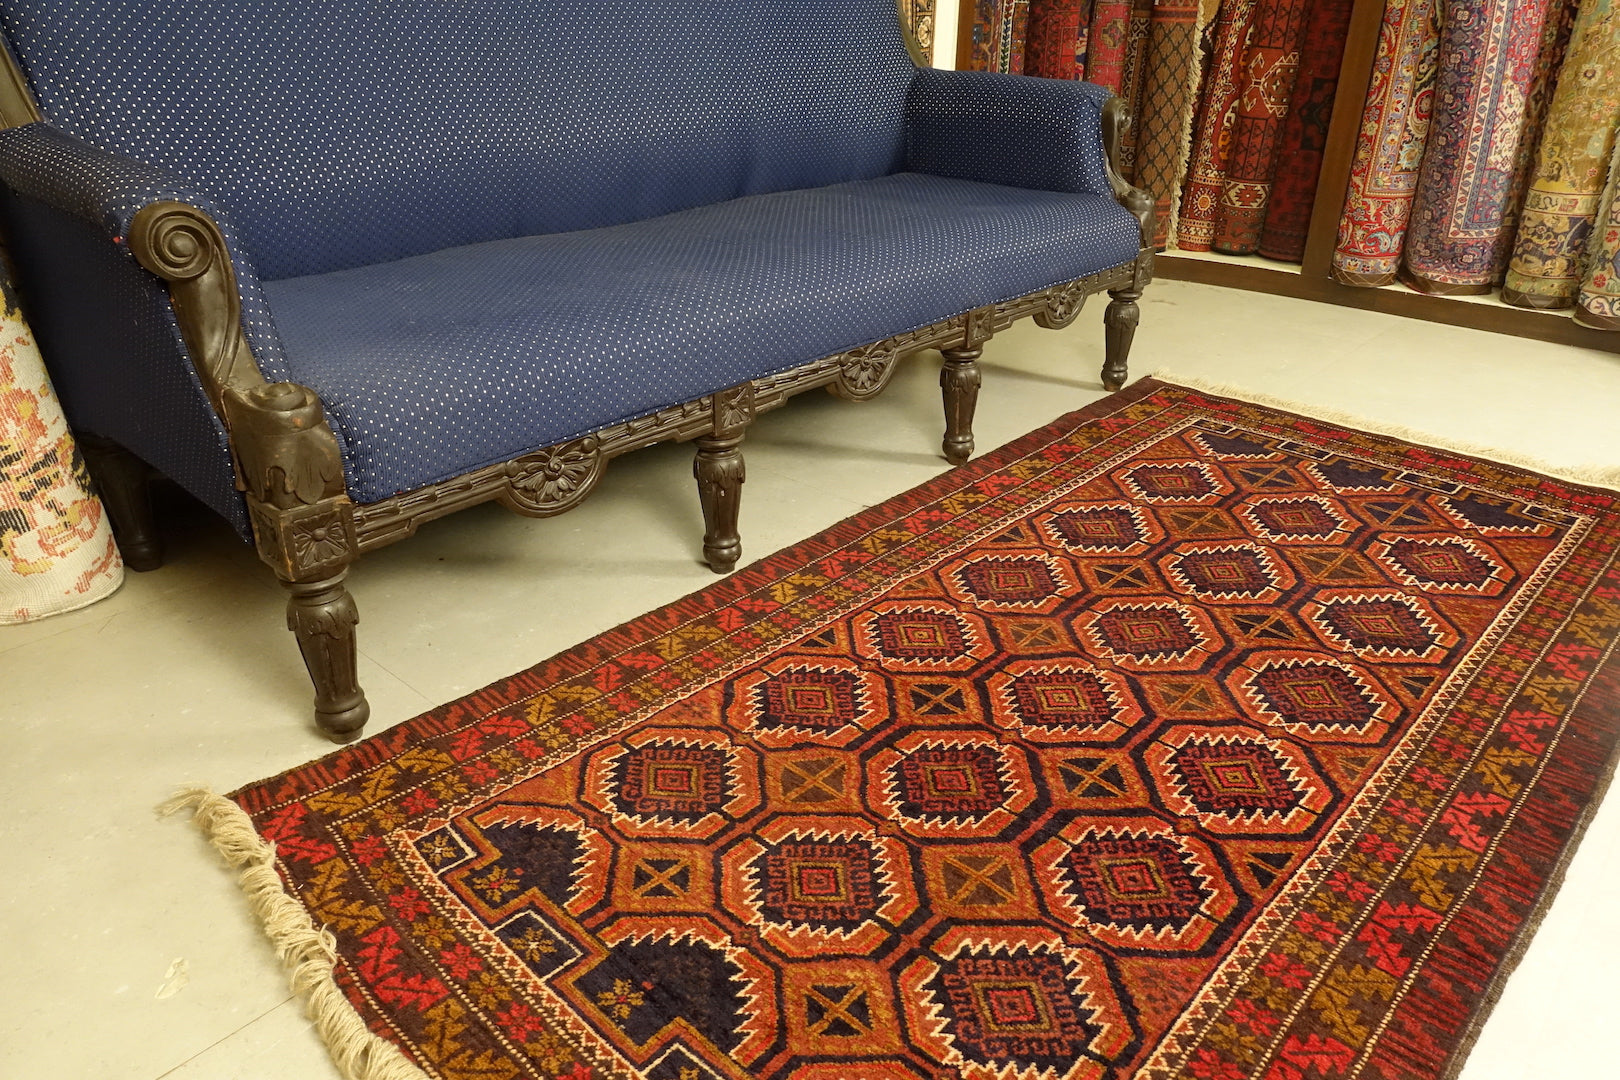 A 3.5 by 6 feet balochi wool carpet, the colours used on the rug are navy blue, orange and pink-red.